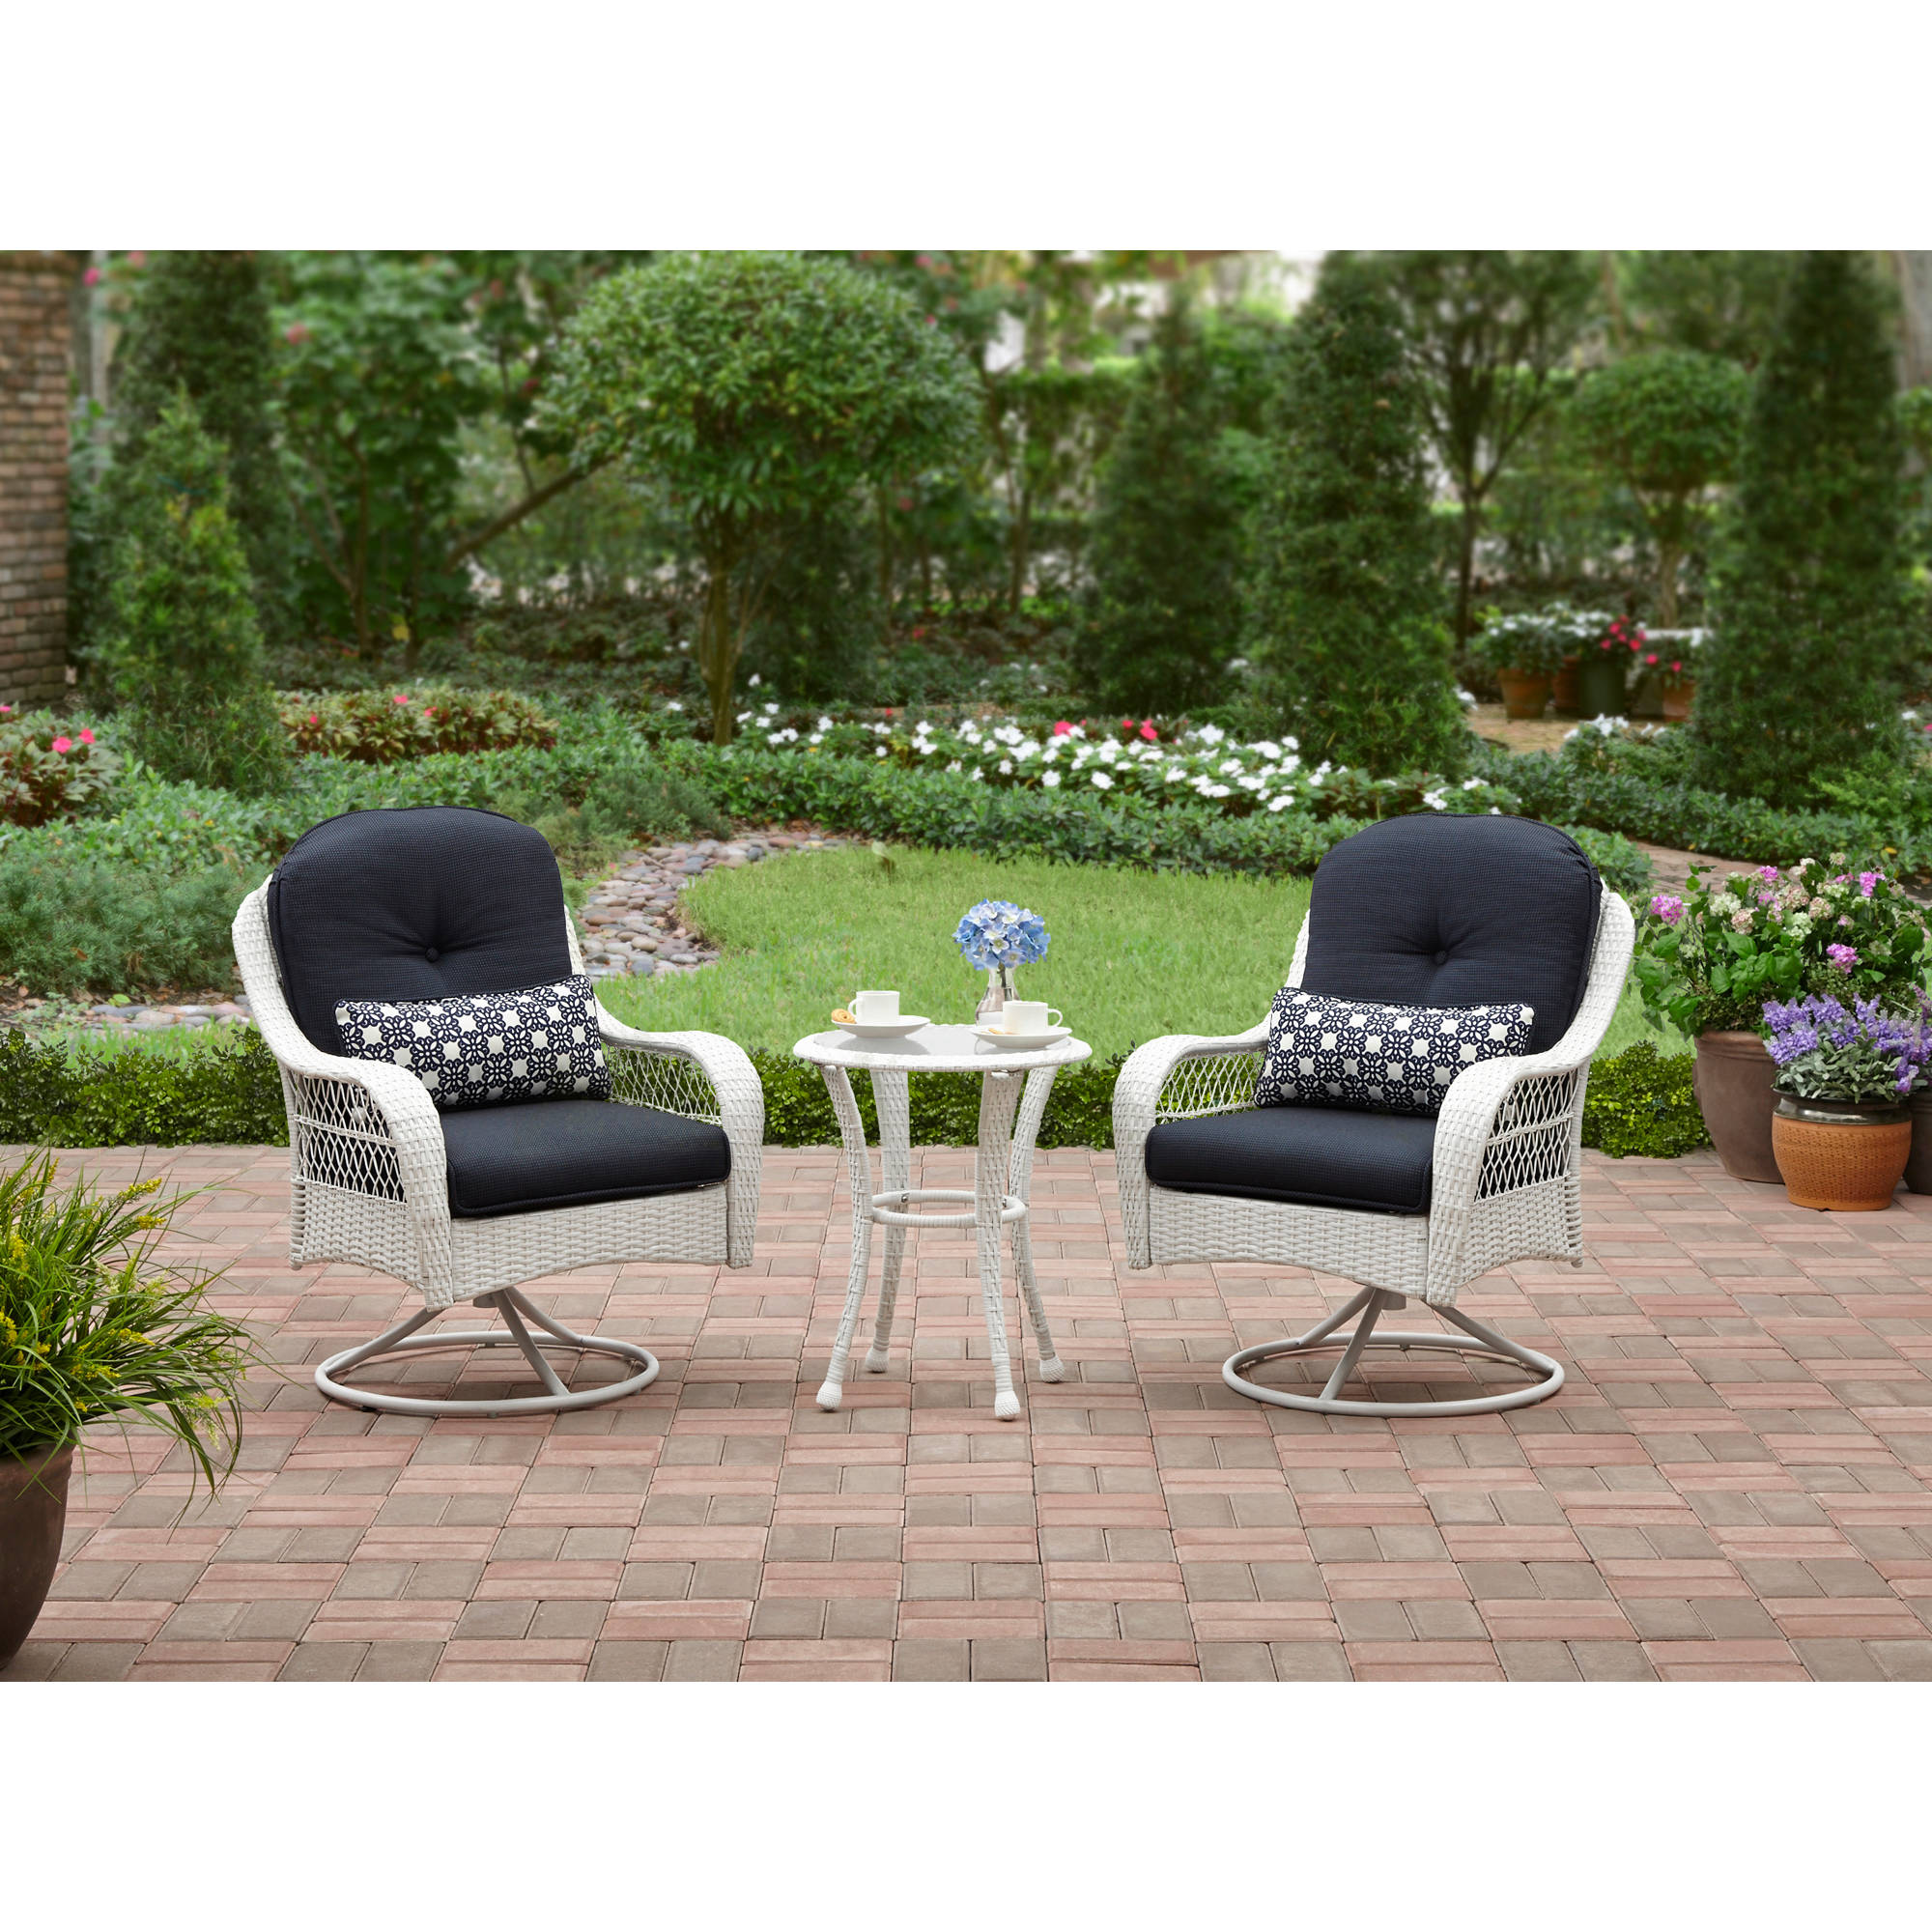 Best Choice Products Outdoor Patio Furniture Wicker 3pc Bistro Set W/ Glass  Top Table, 2 Chairs  Brown   Walmart.com Part 95